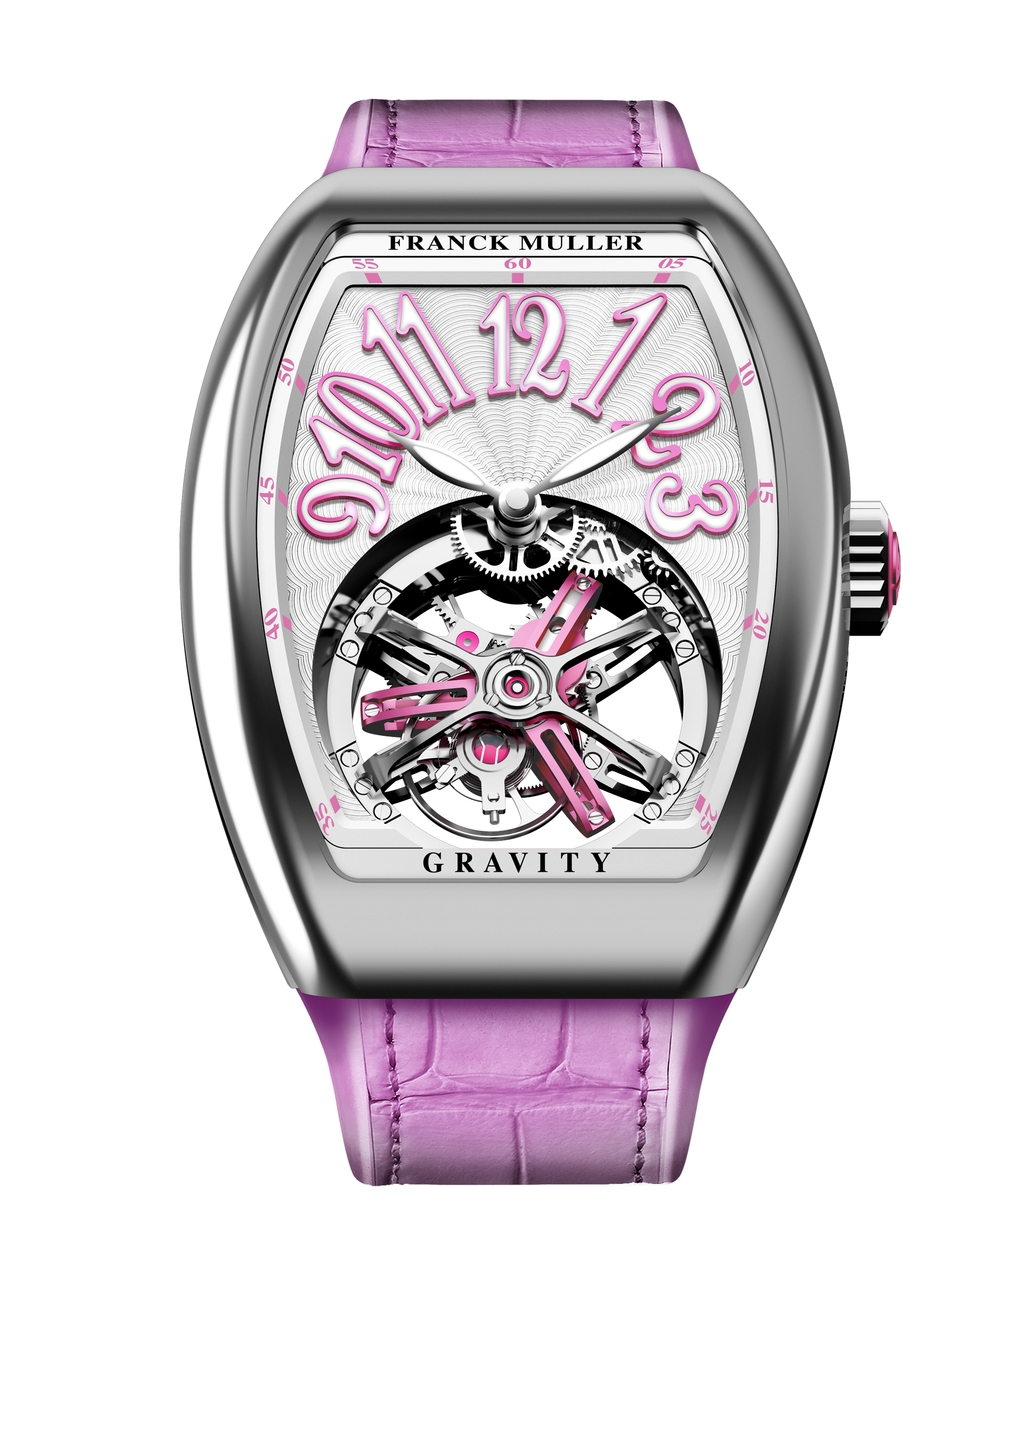 Franck Muller V35 Vanguard Lady Tourbillon Gravity